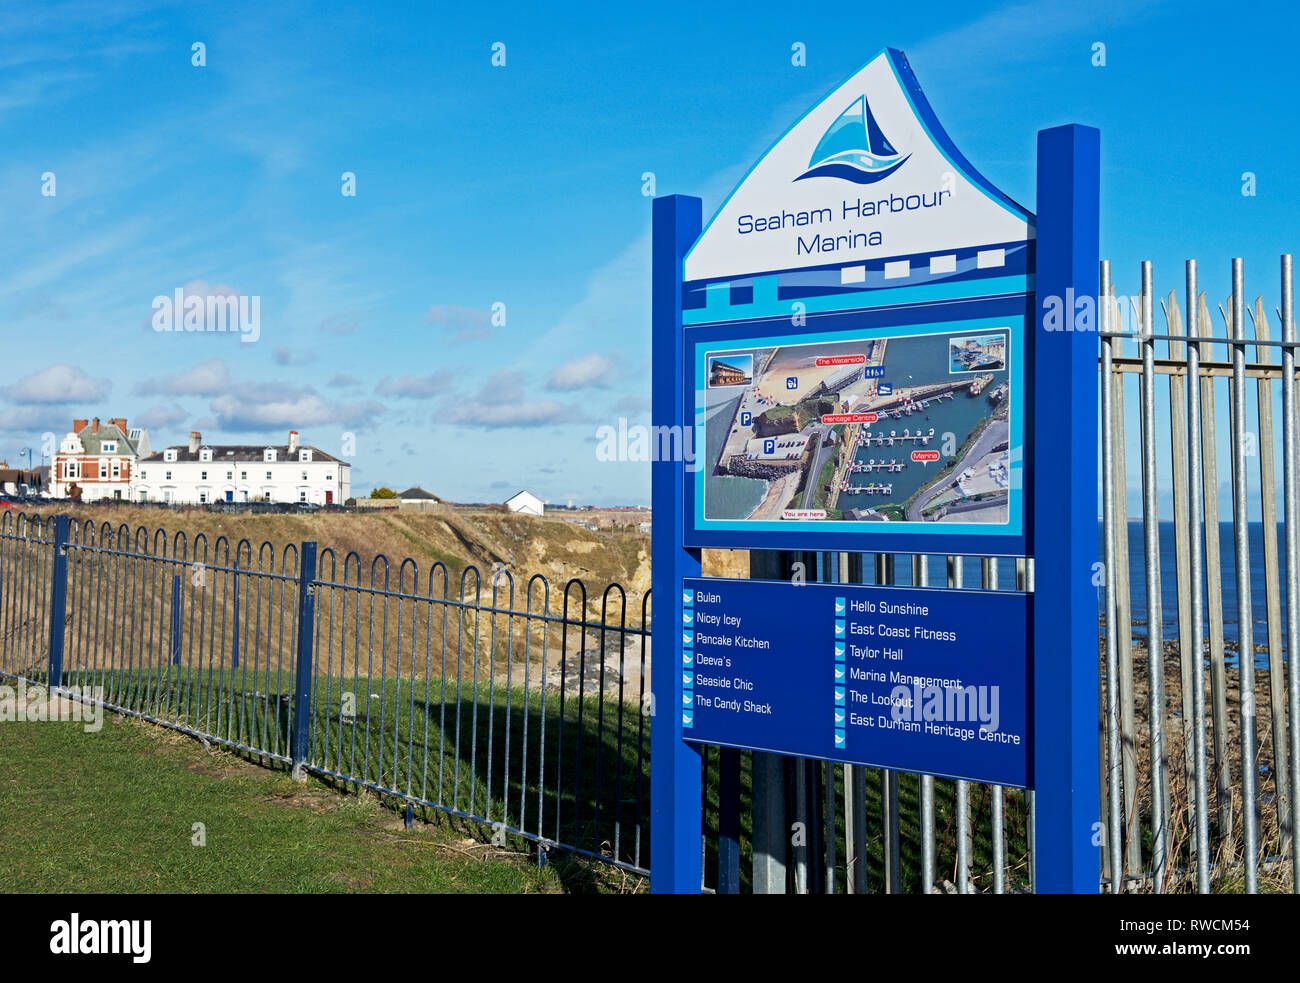 Sign for Seaham Marina, Seaham, Co Durham, England UK - Stock Image